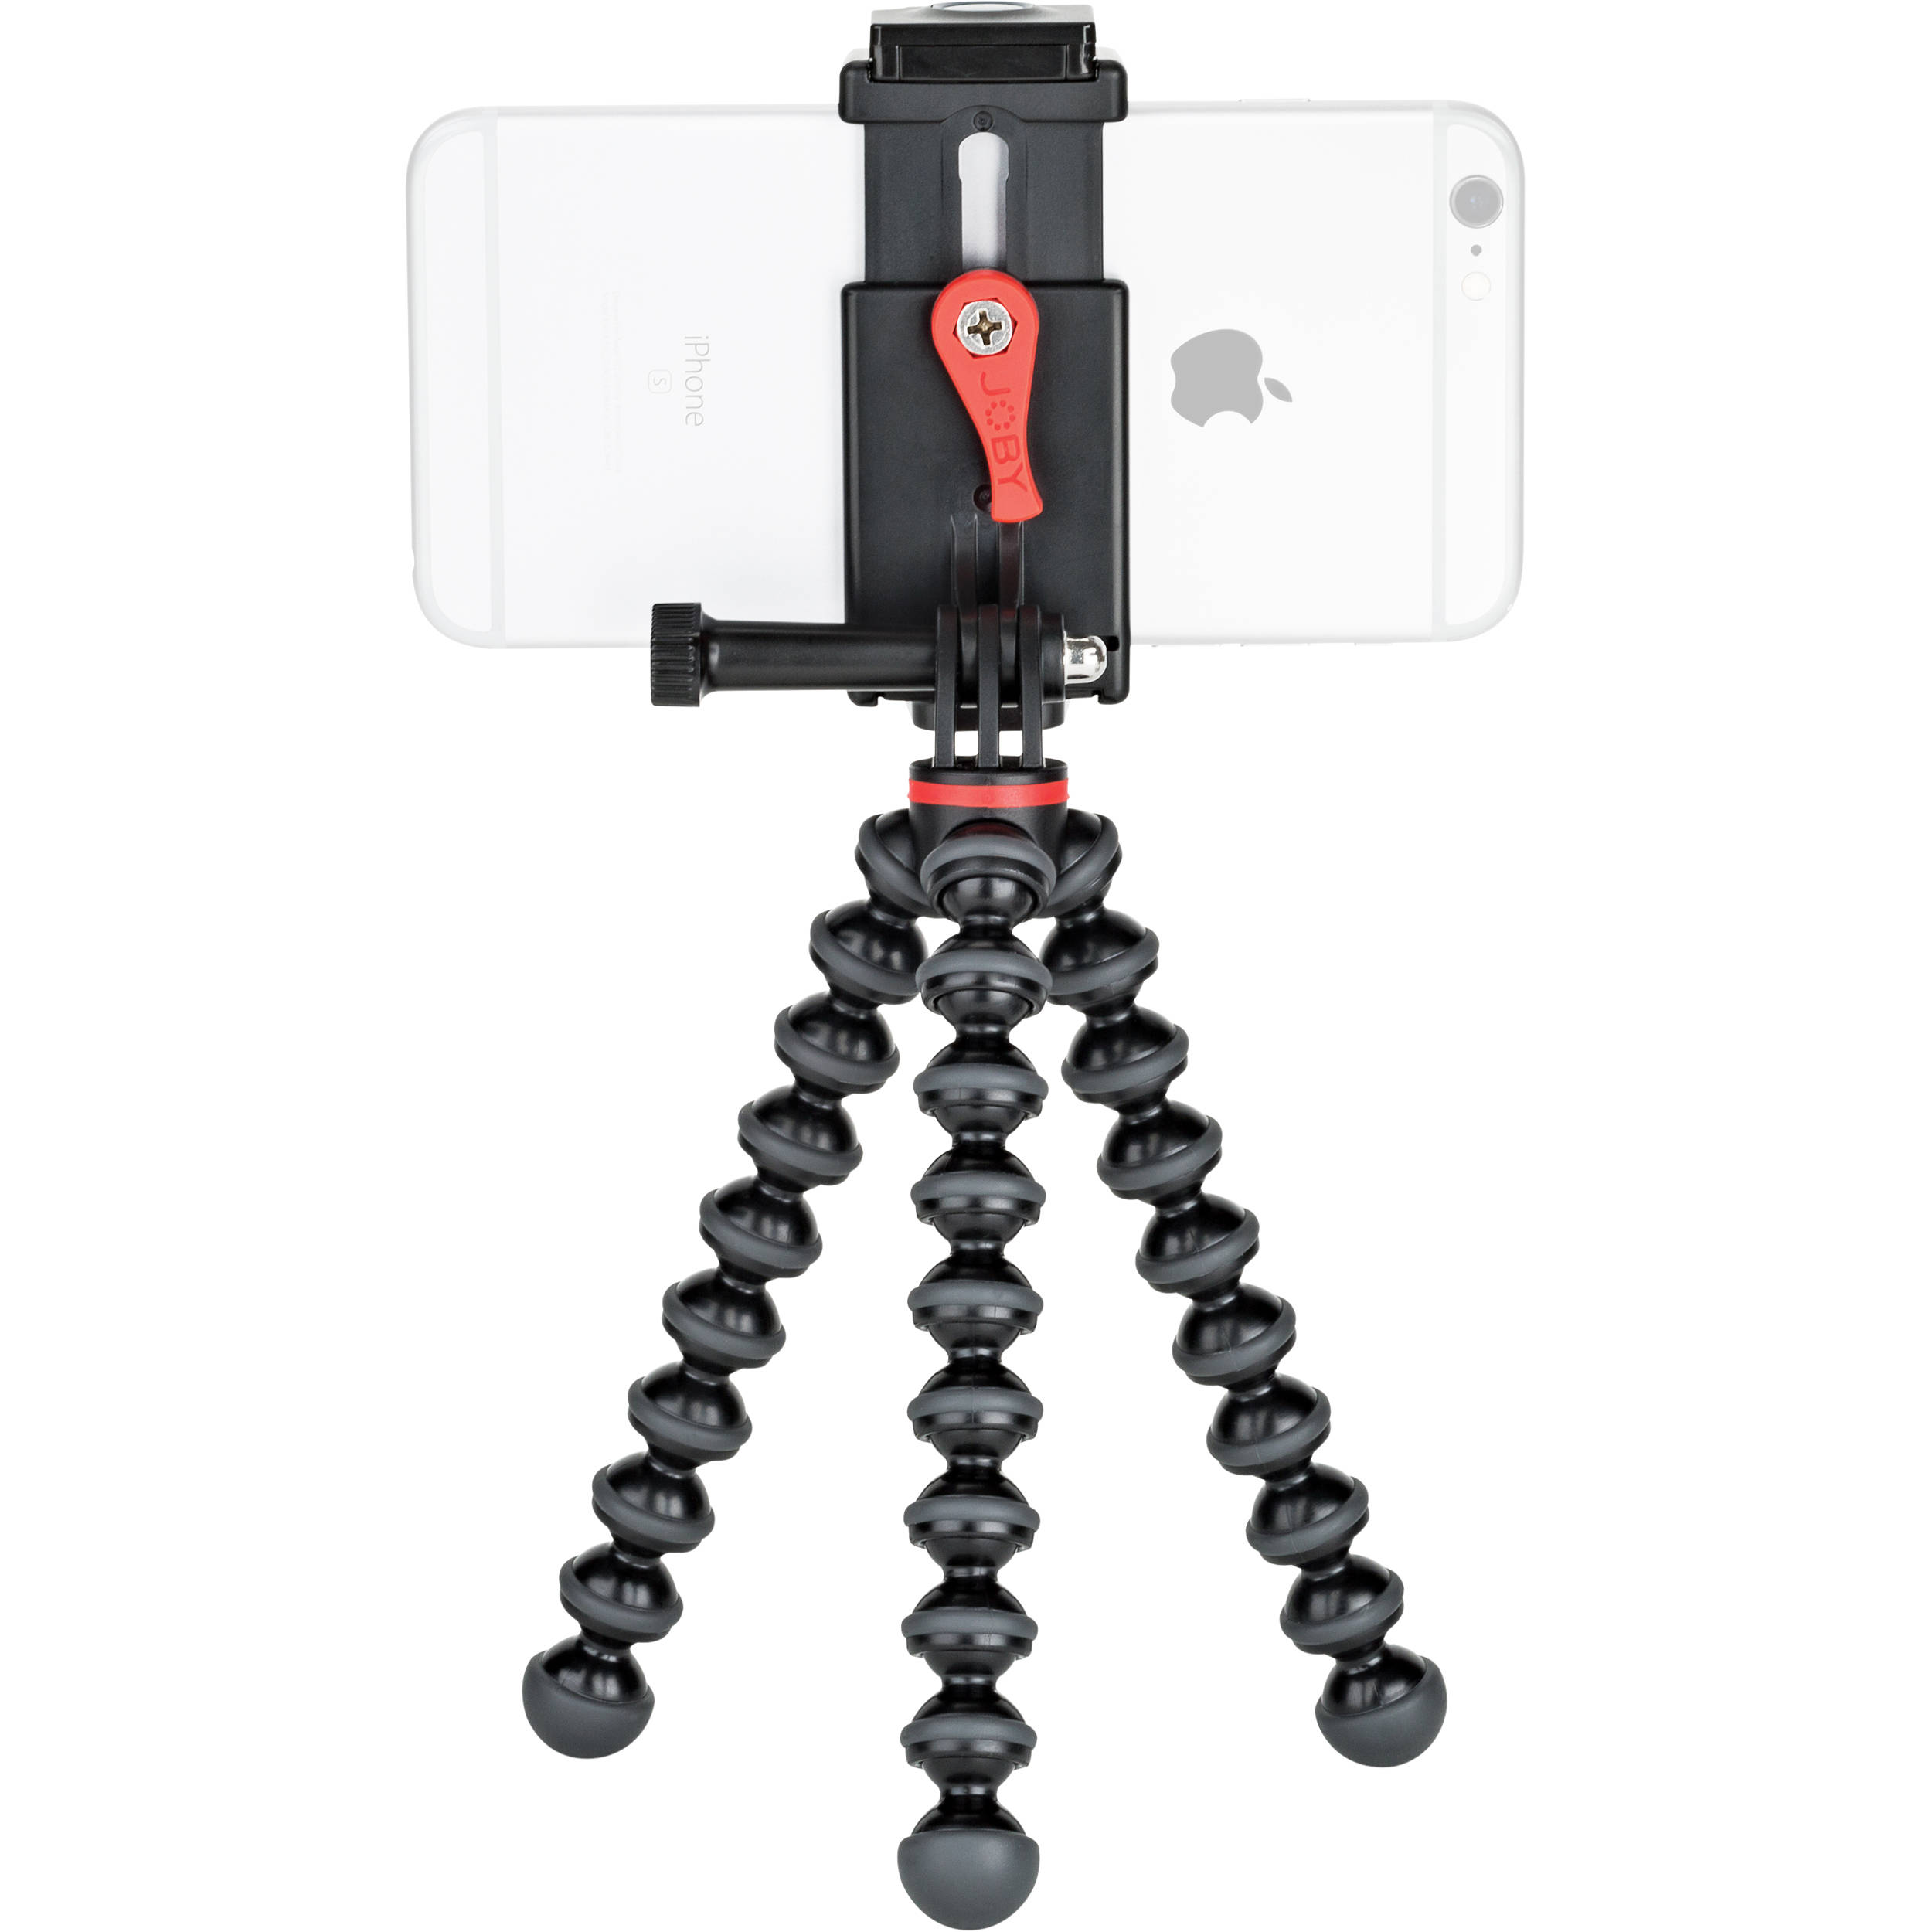 joby griptight mount pro for ipad review